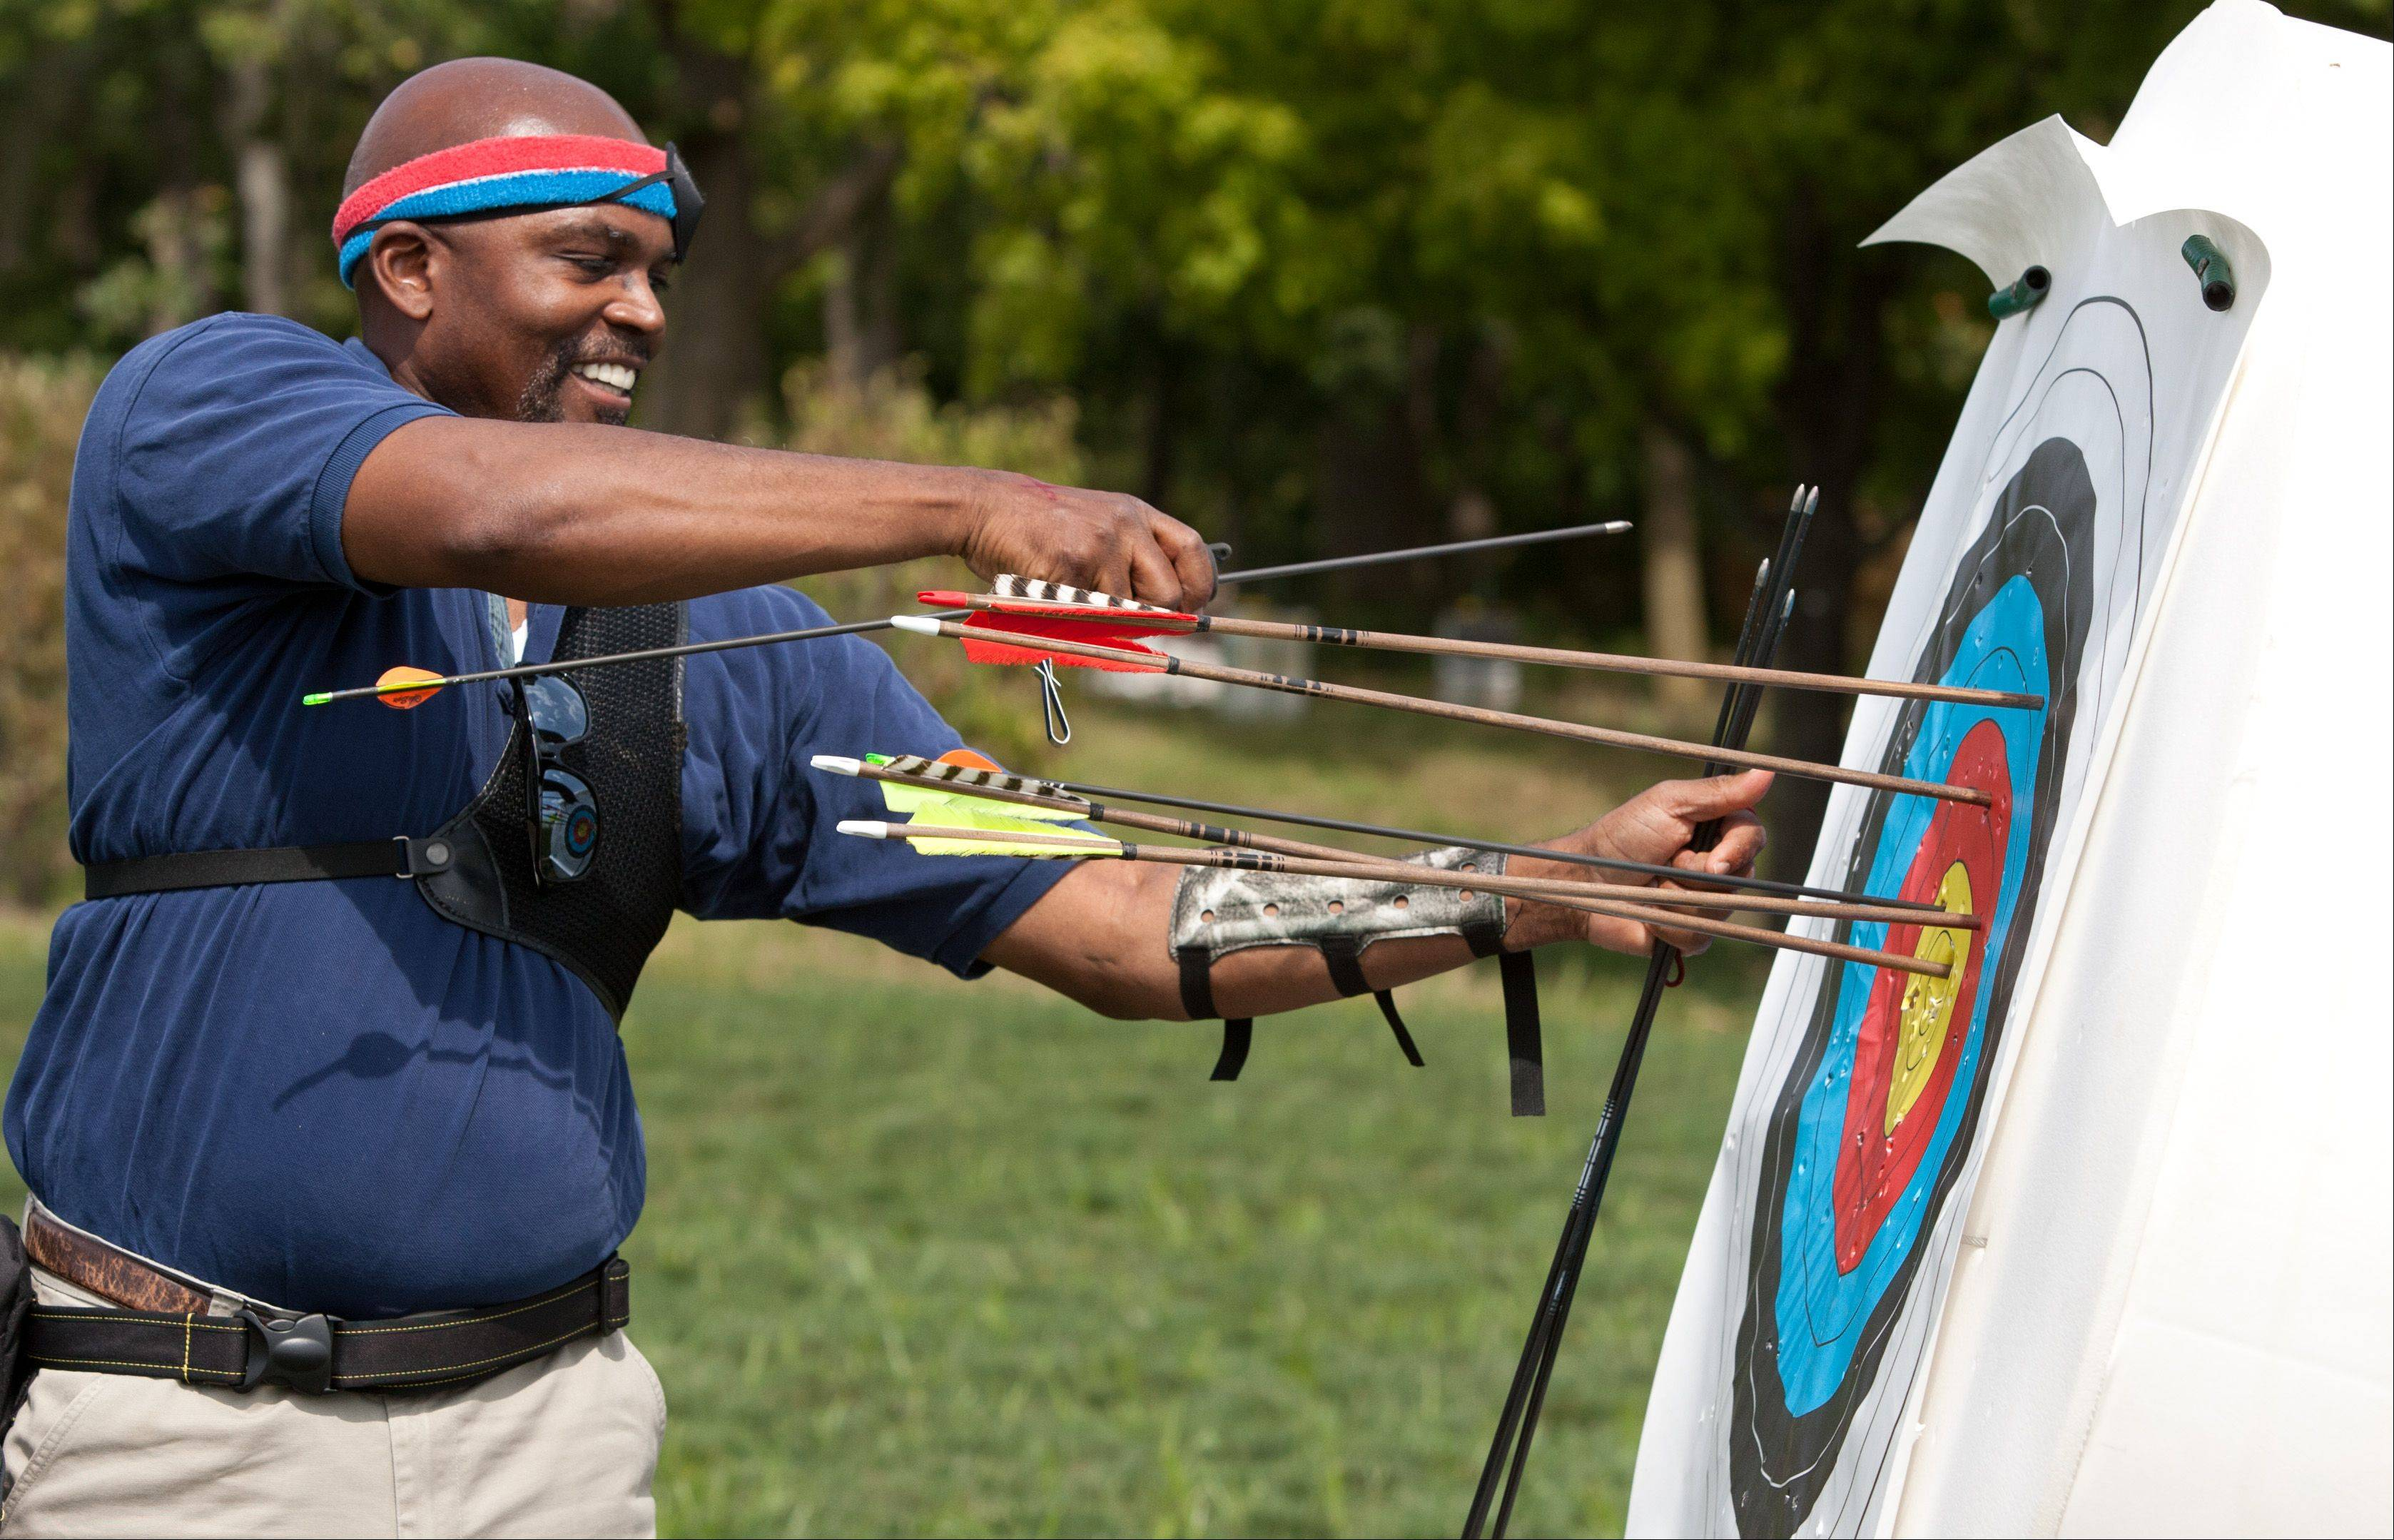 Archers, fishers experience new Blackwell amenities at DuPage forest event